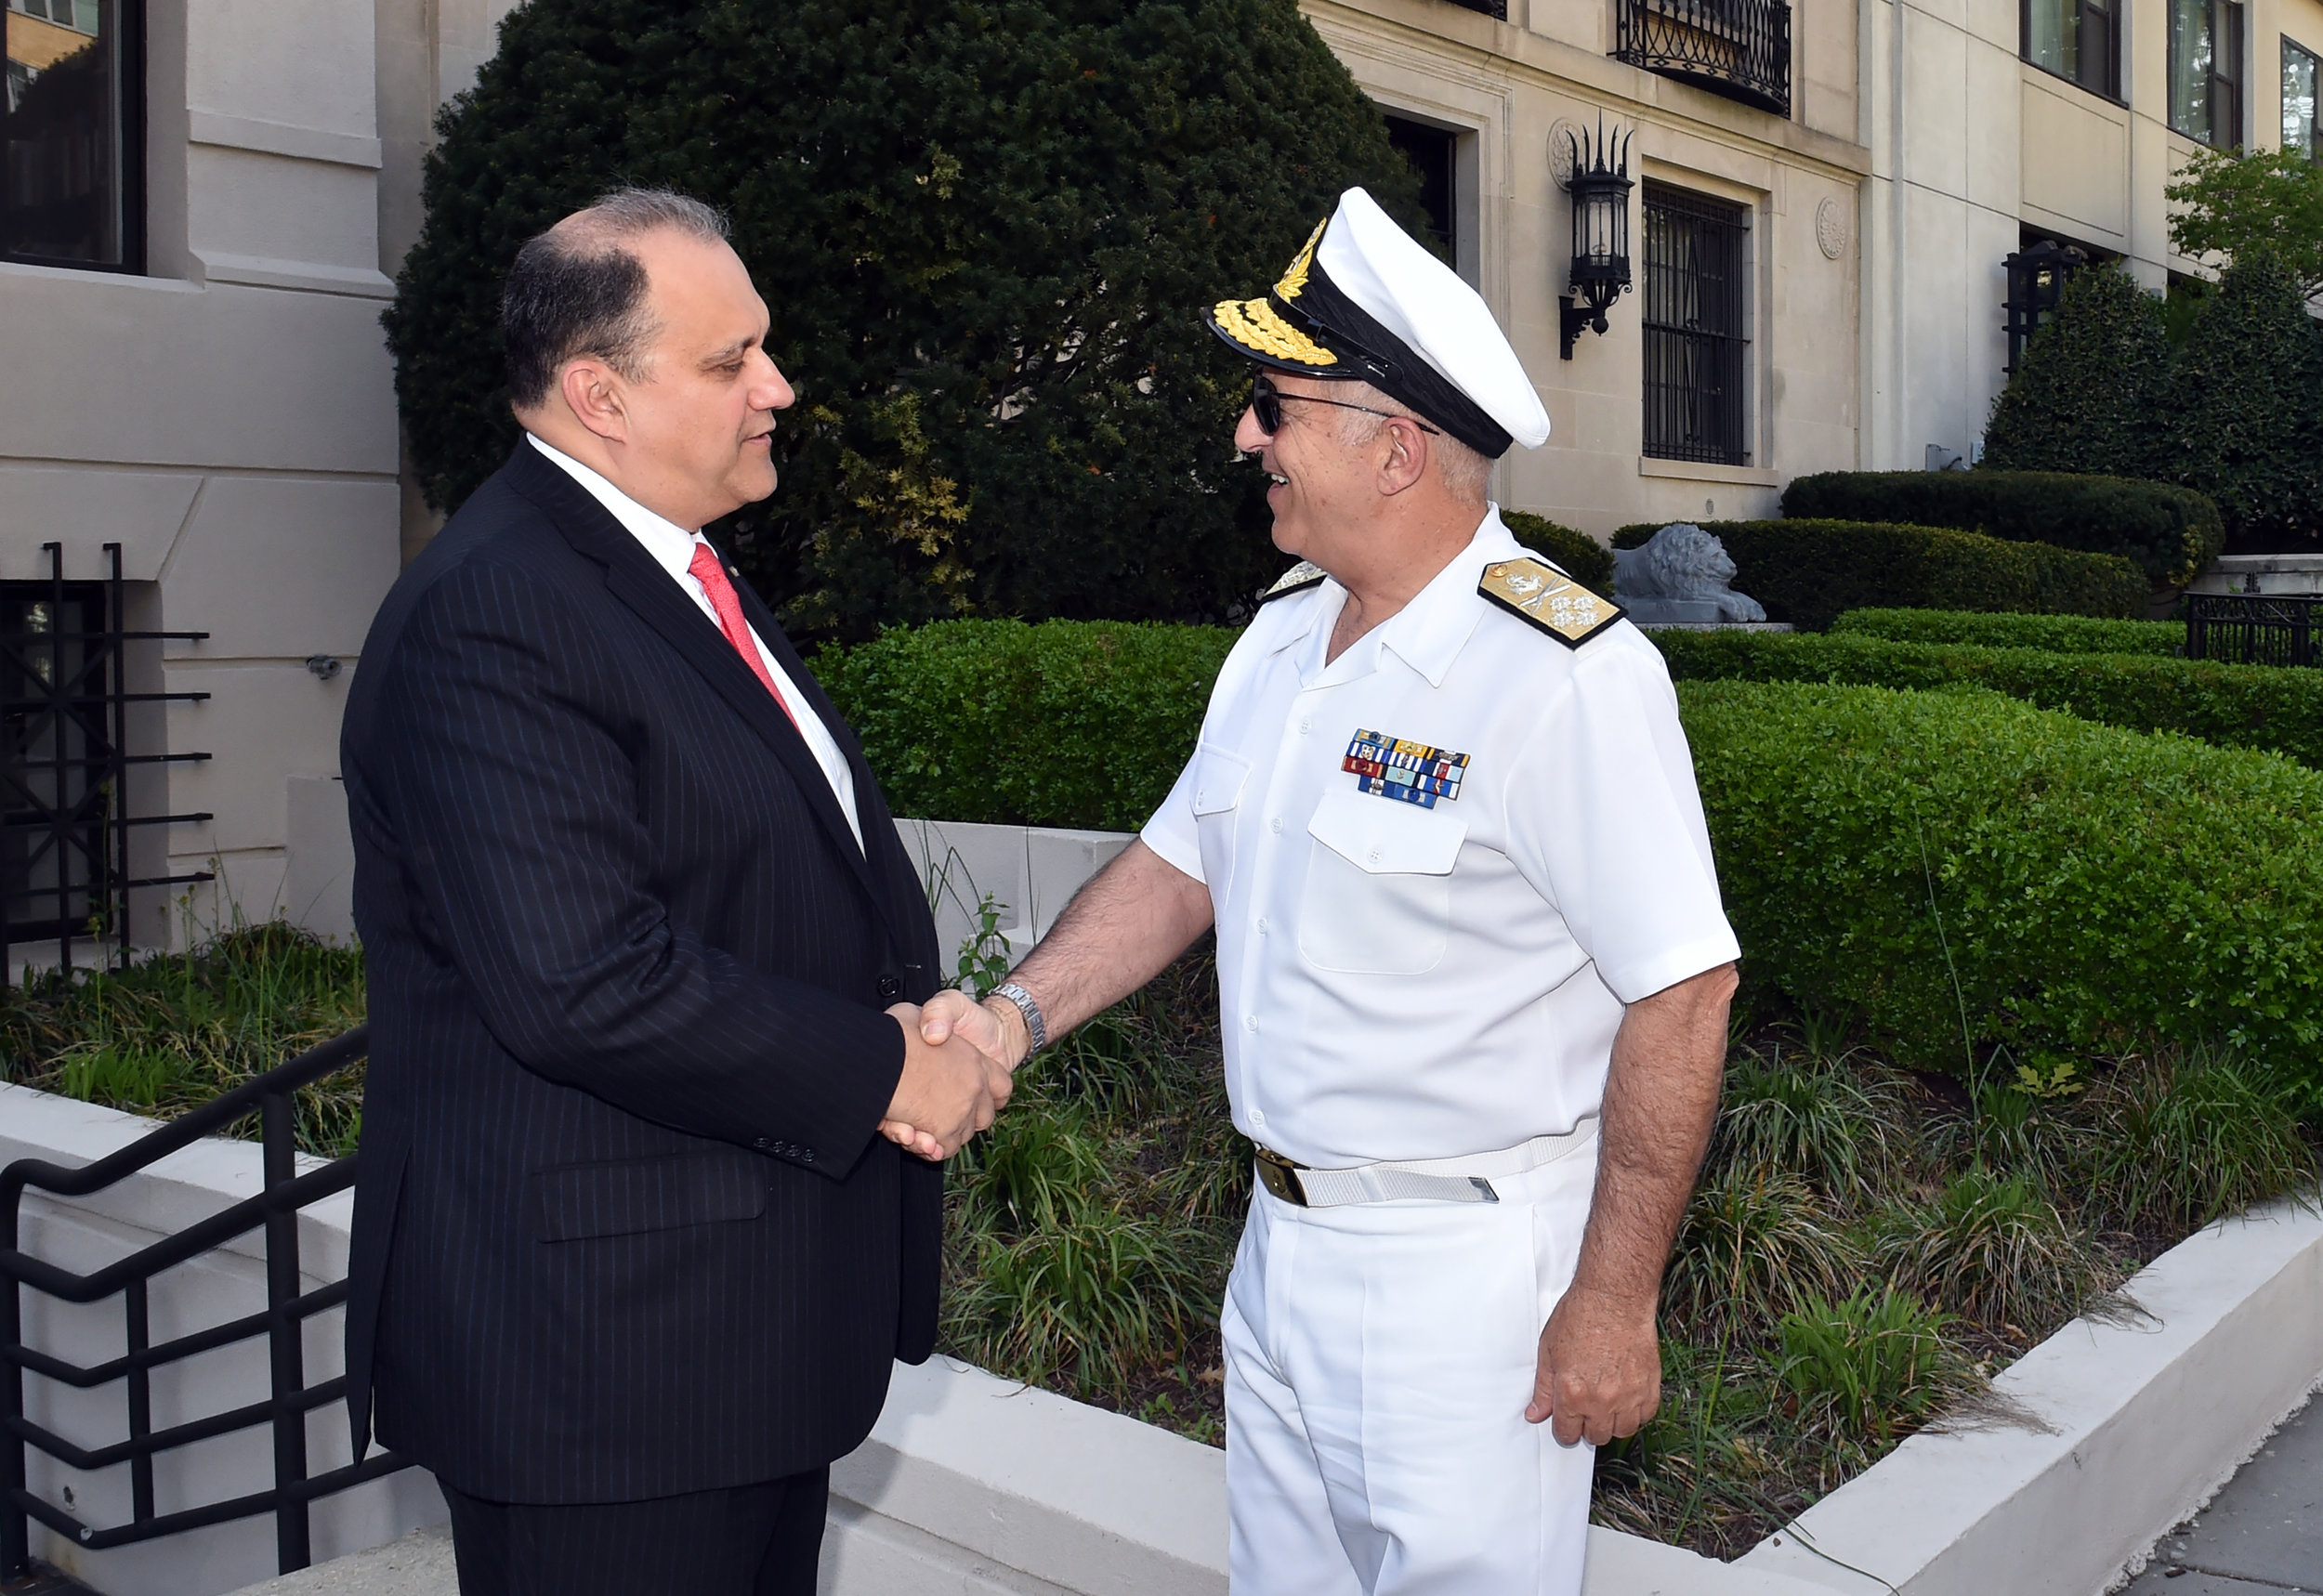 Nick Larigakis, President of AHI, welcoming Admiral Evangelos Apostolakis, Chief of the Hellenic Armed Forces General Staff, to Hellenic House.